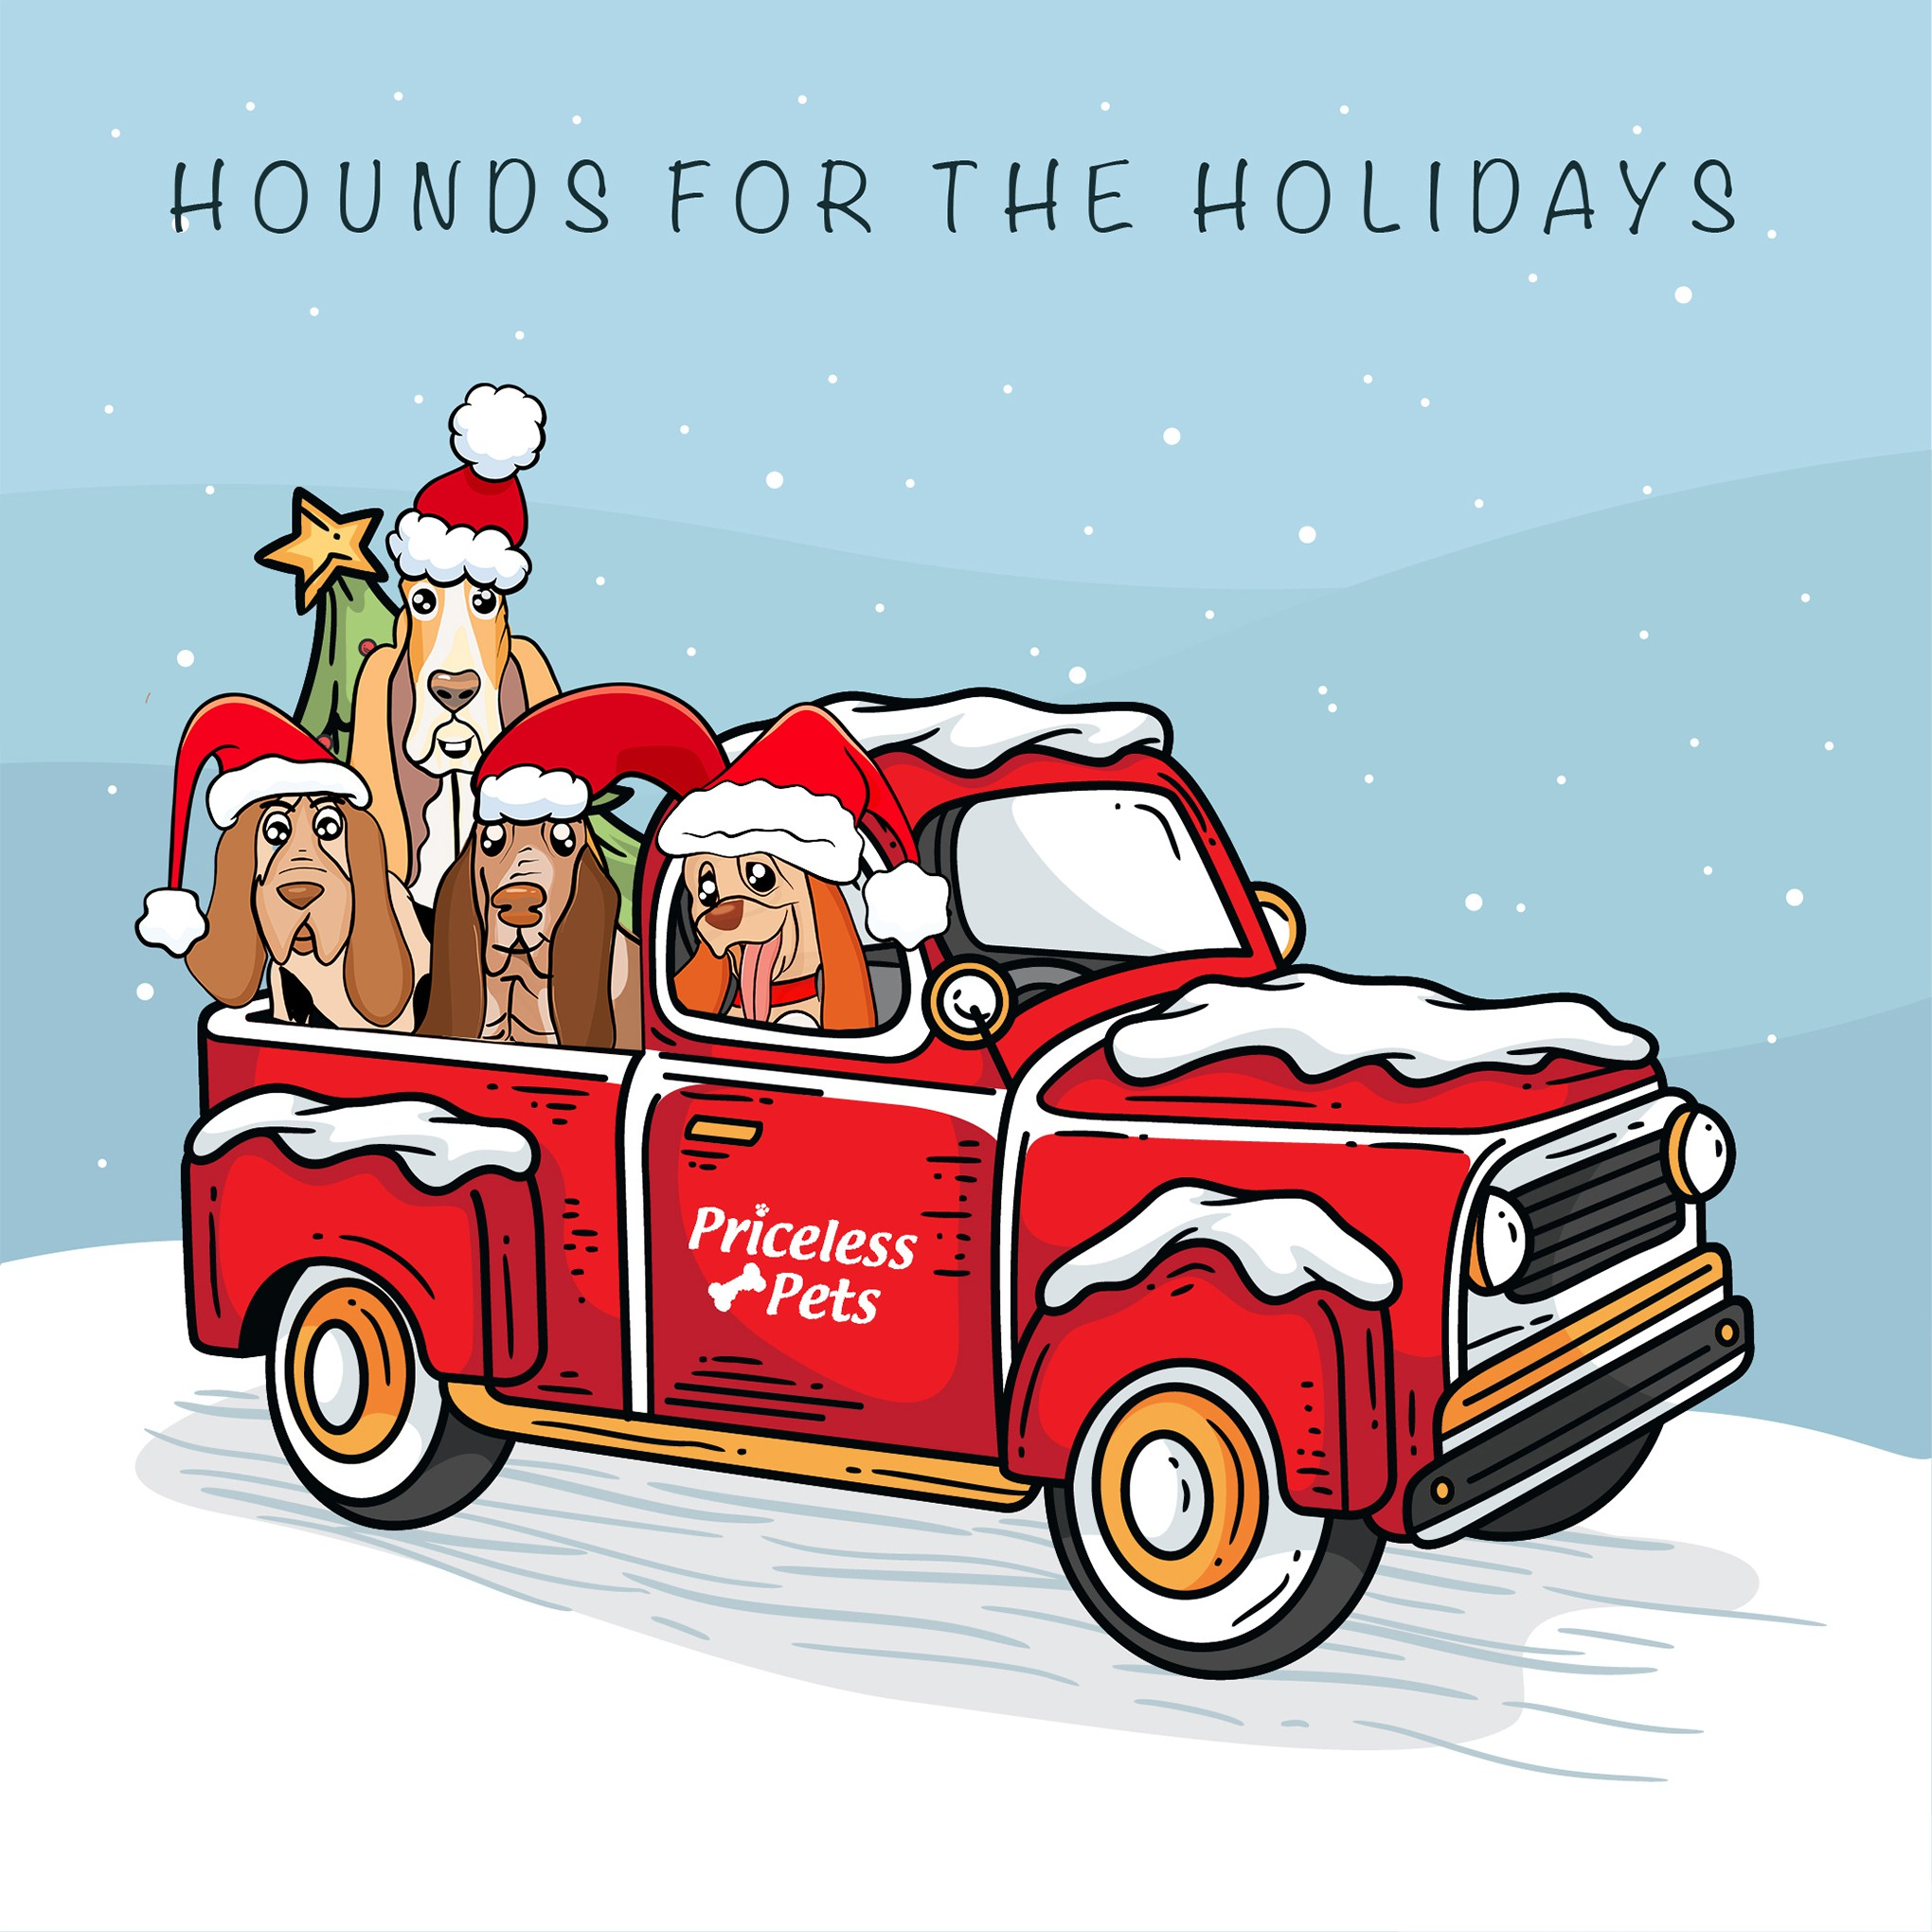 Hounds for the holidays